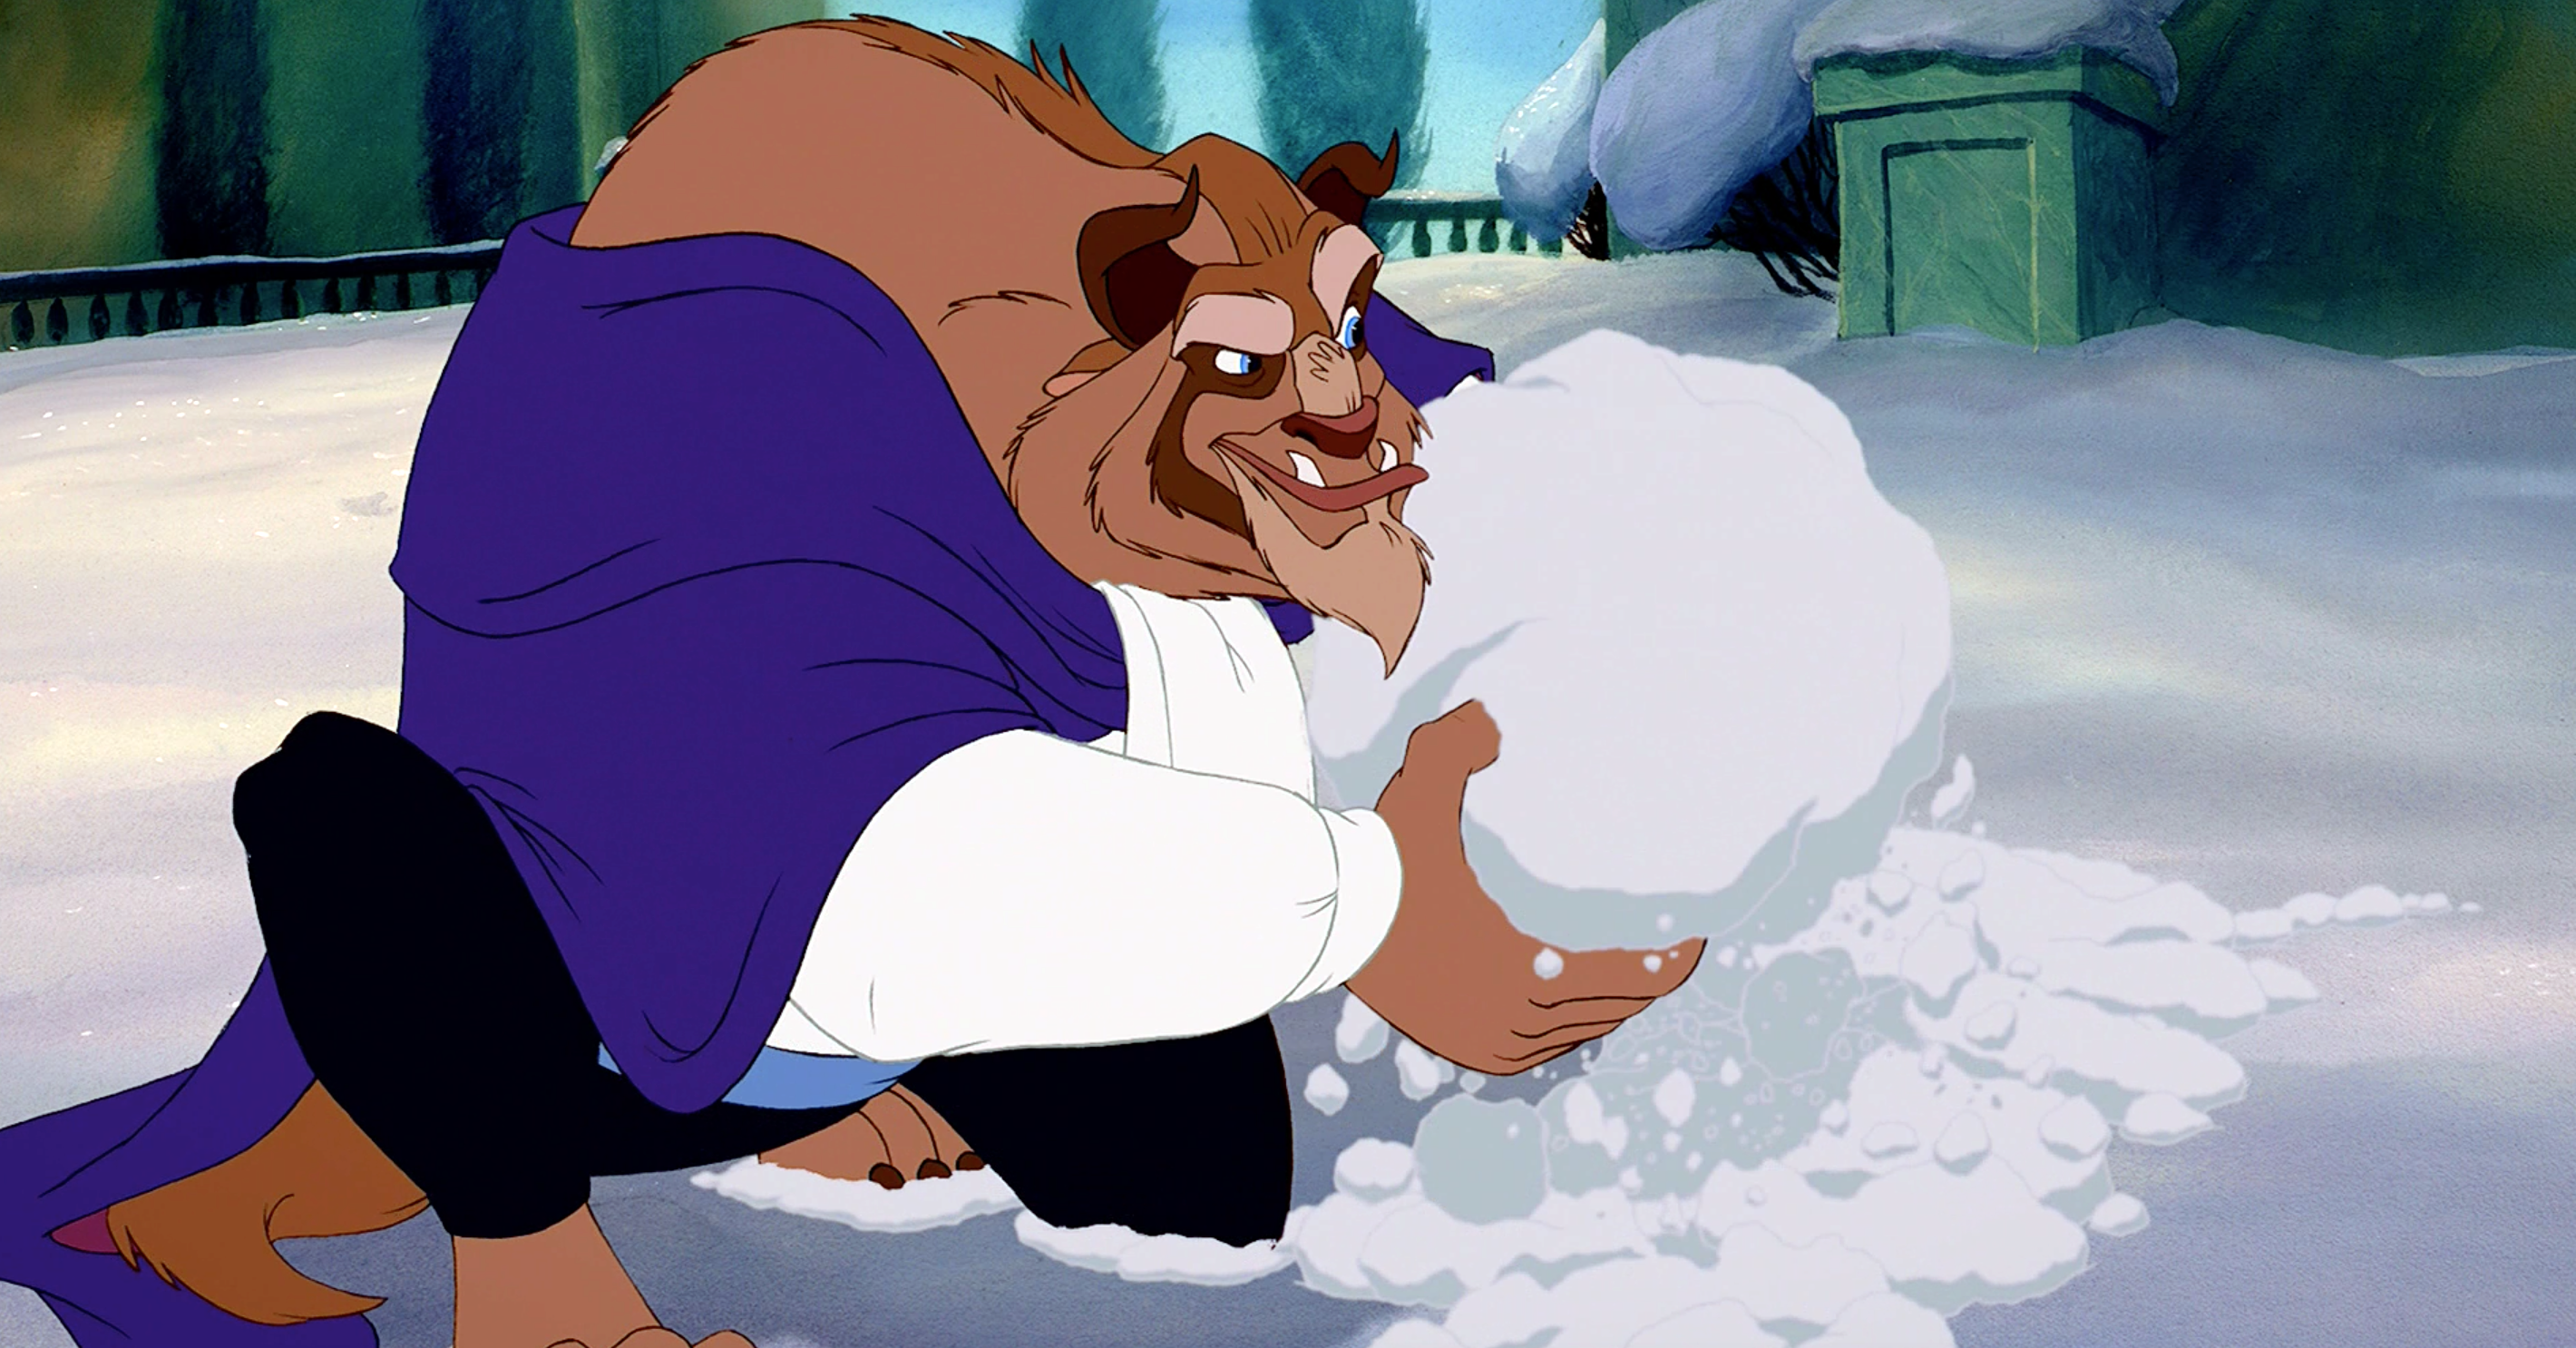 The Stages of Winter, As Told by Disney Characters